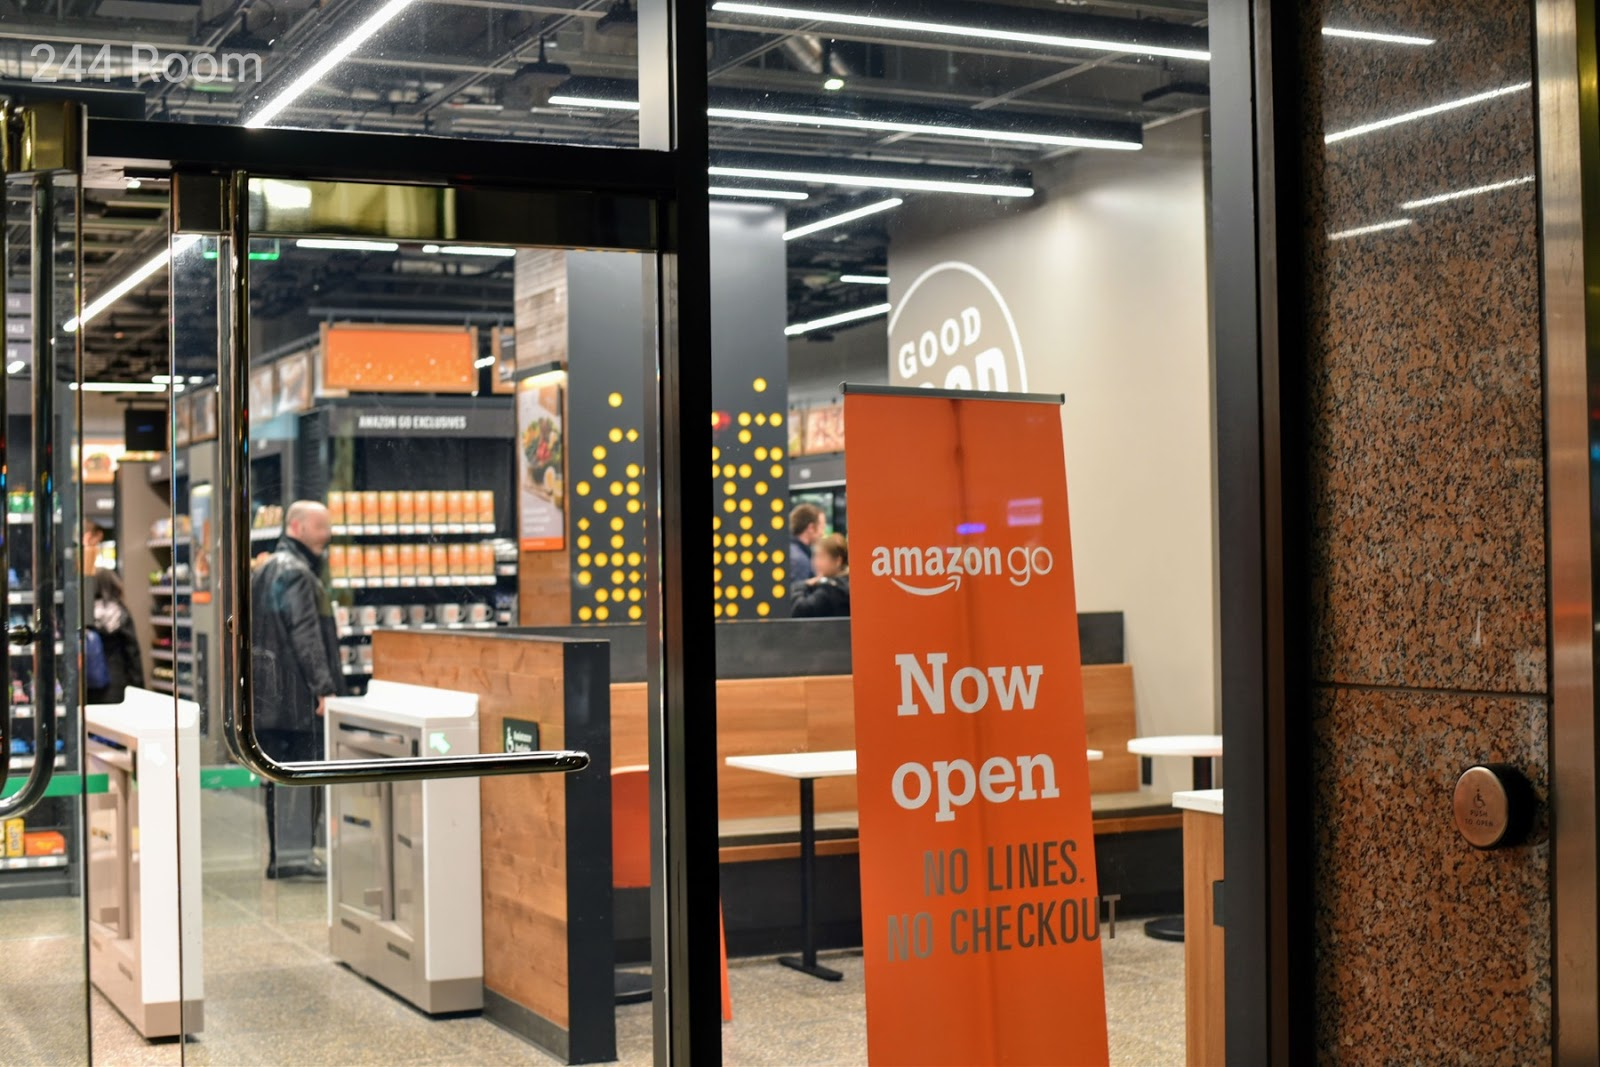 Amazon Go SF2